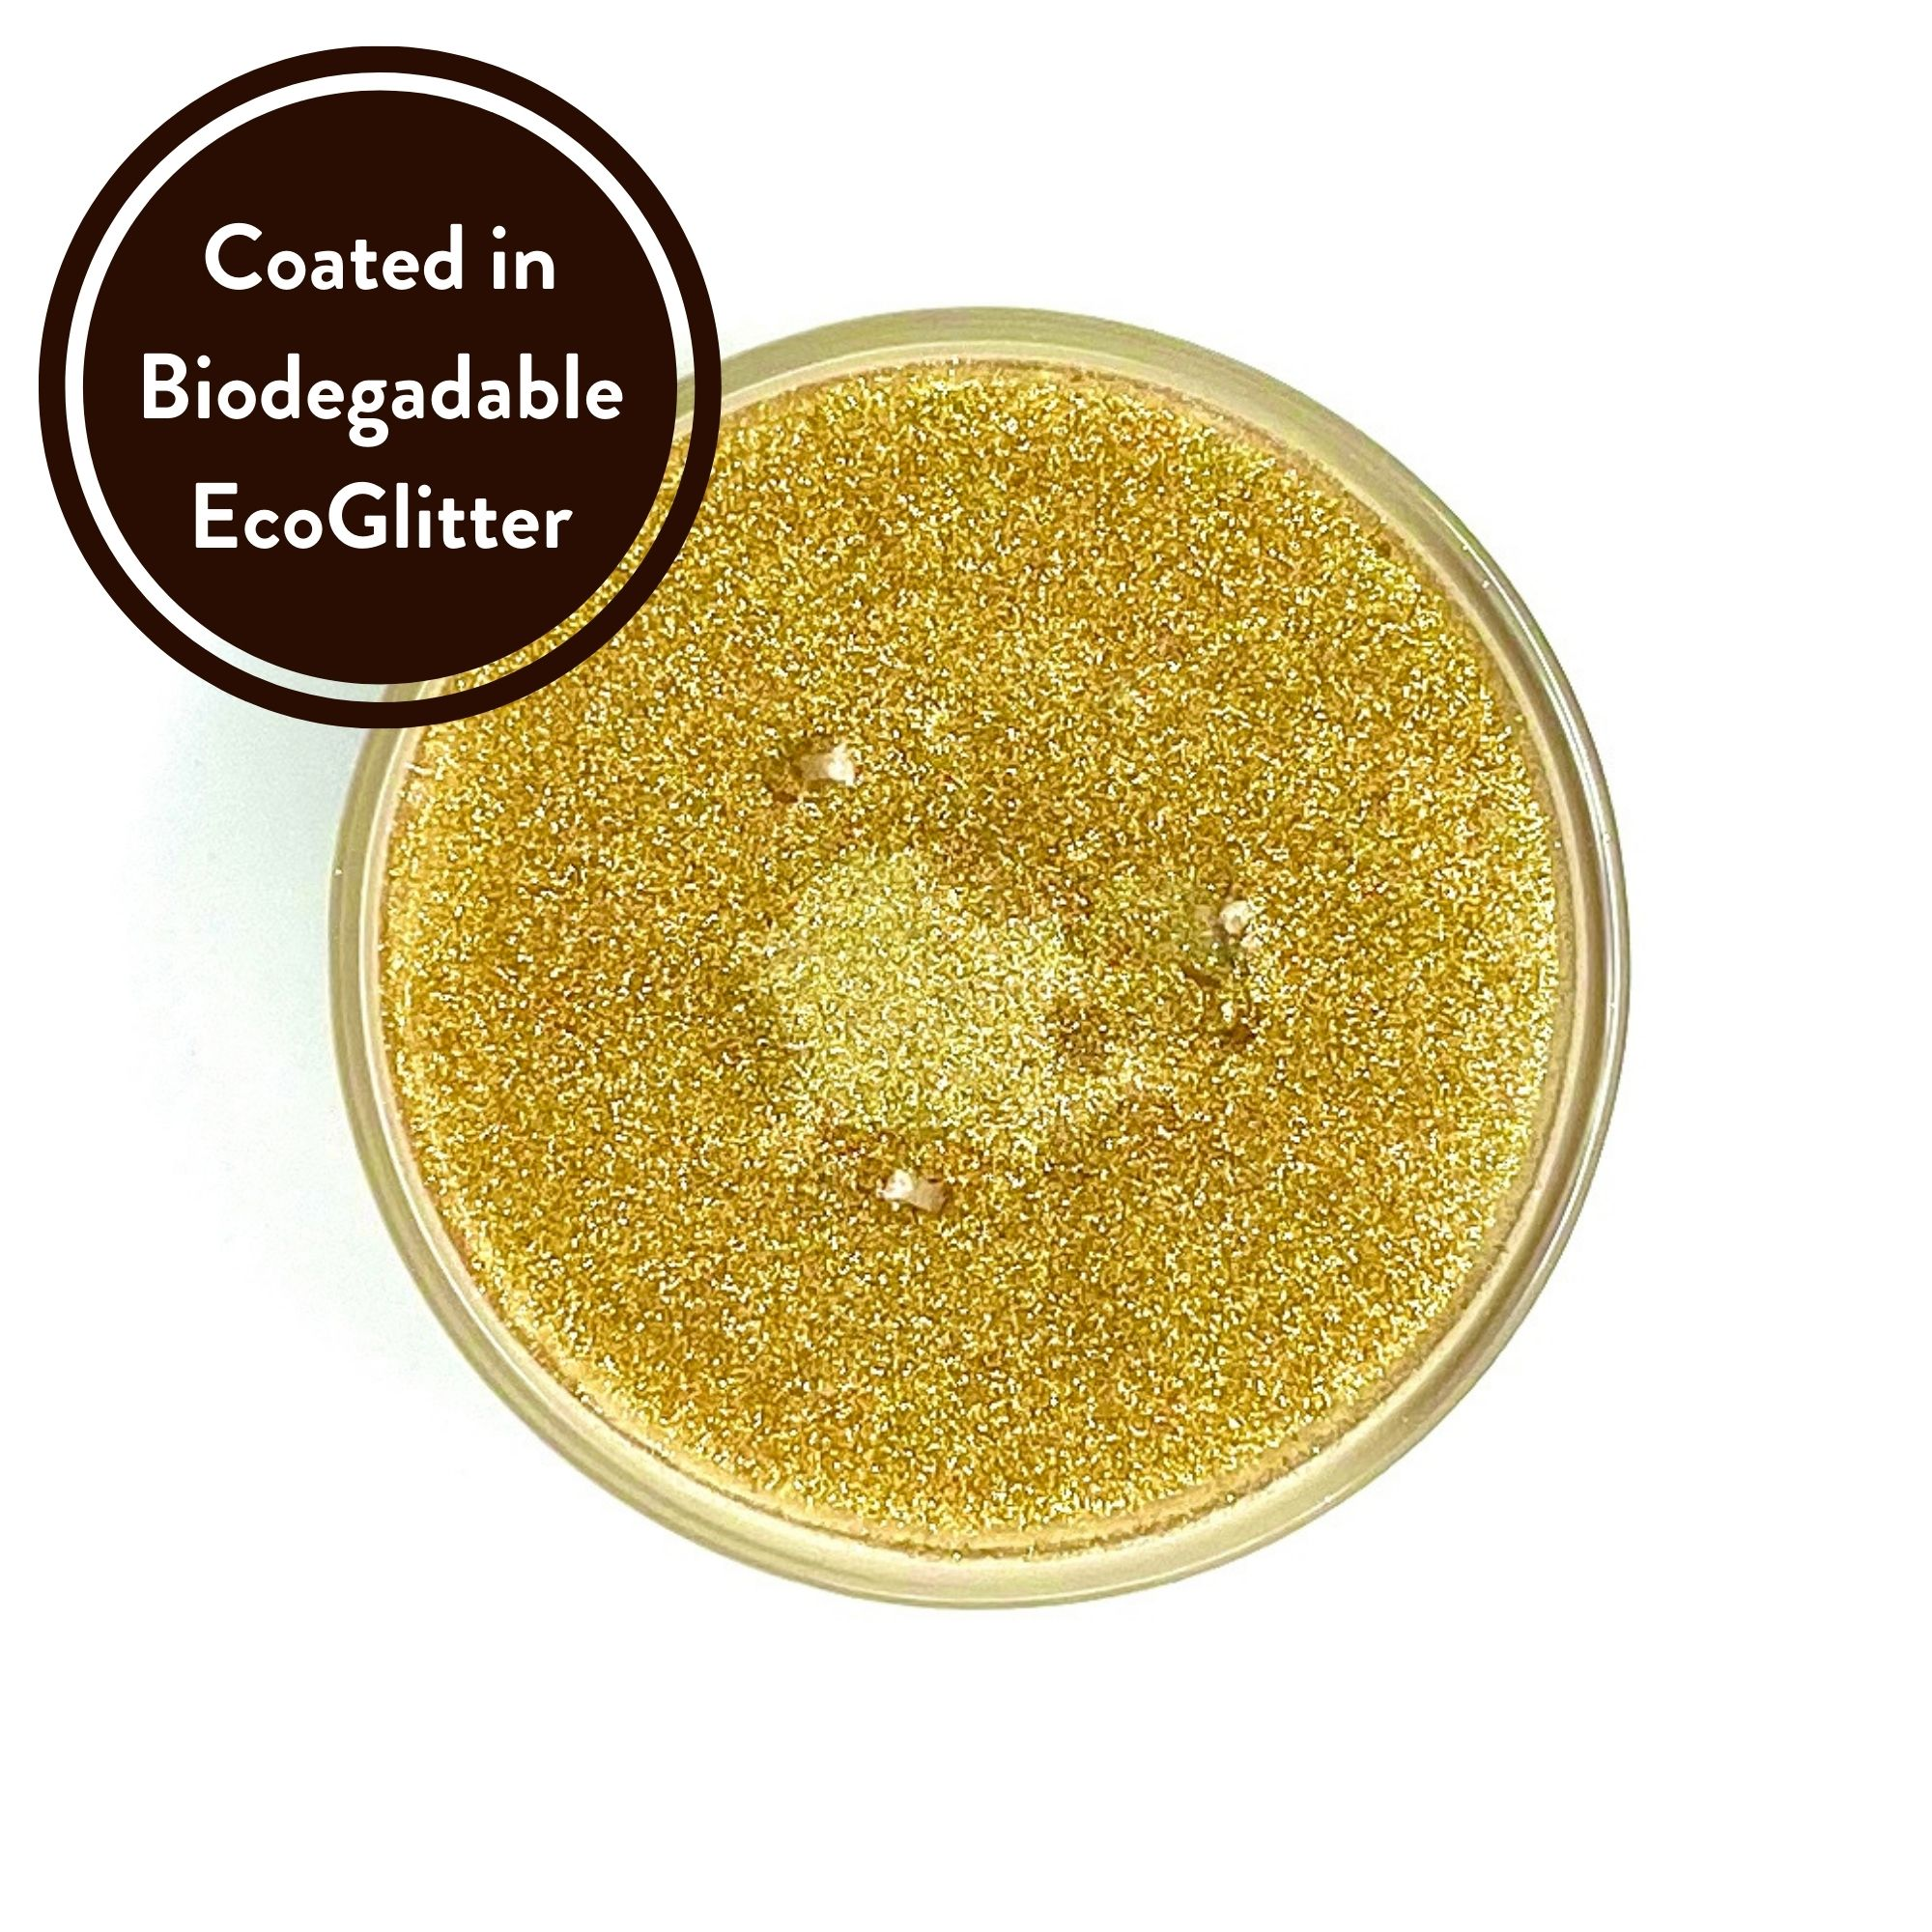 Eastern Treasure Three wick scented candle coated in biodegradable Eco Glitter Top view by Twoodle Co Natural Home Scents